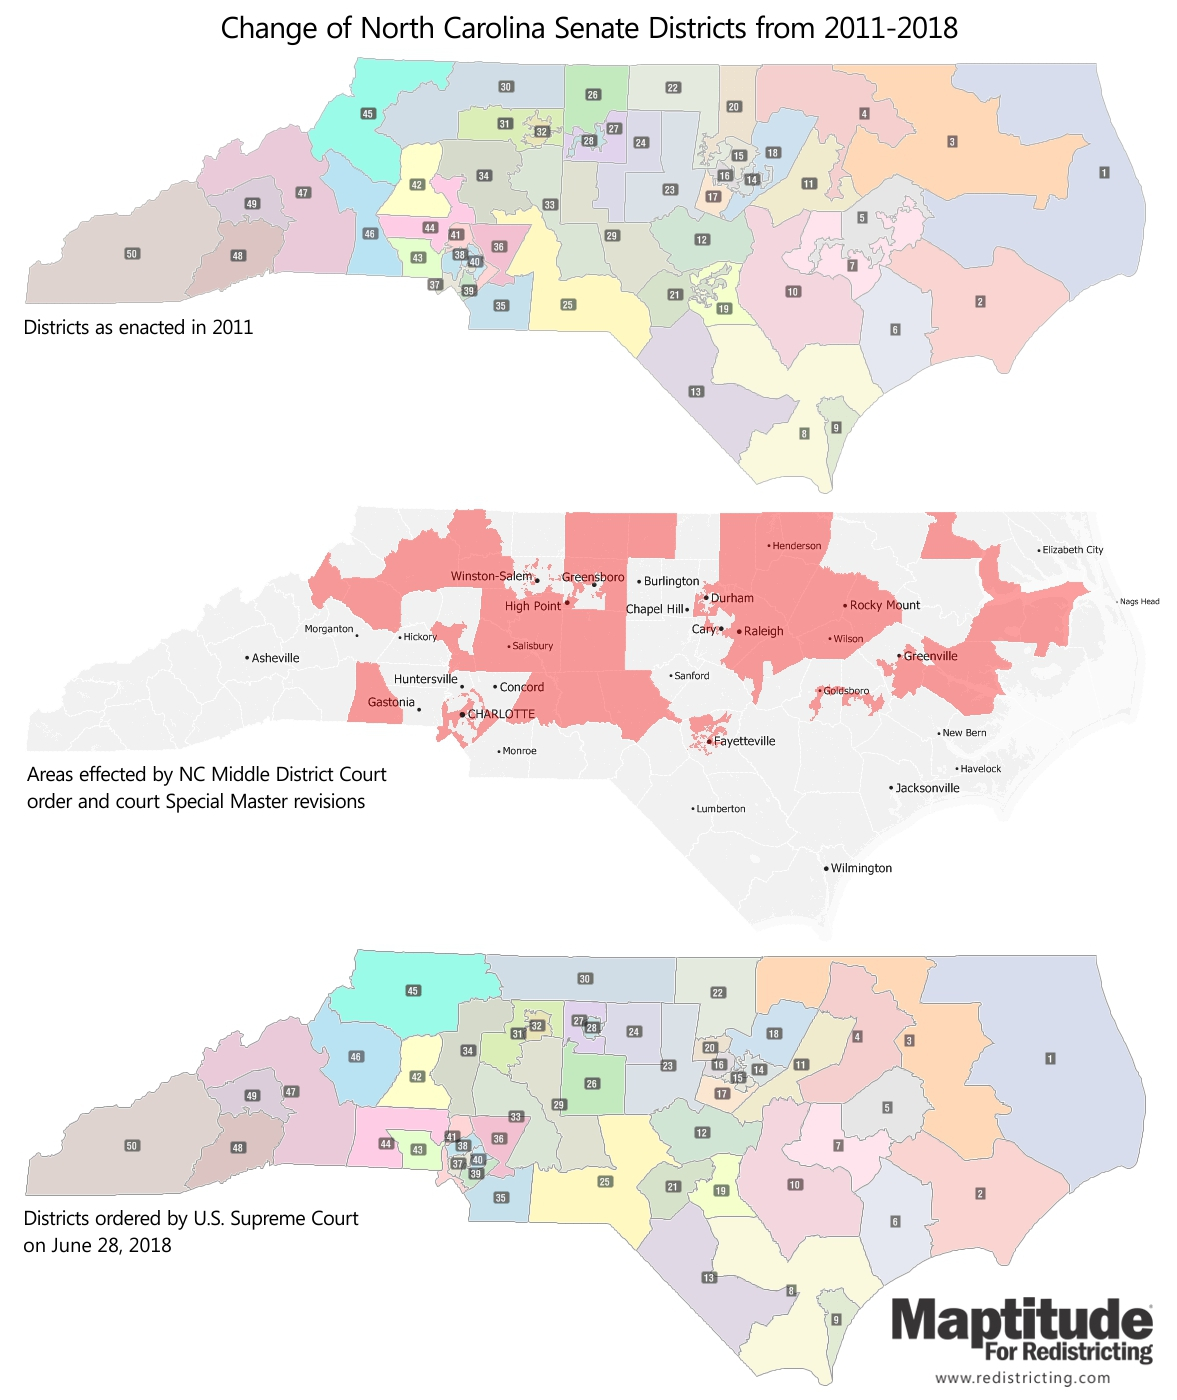 Maptitude for Redistricting map infographic of North Carolina Senate District Changes